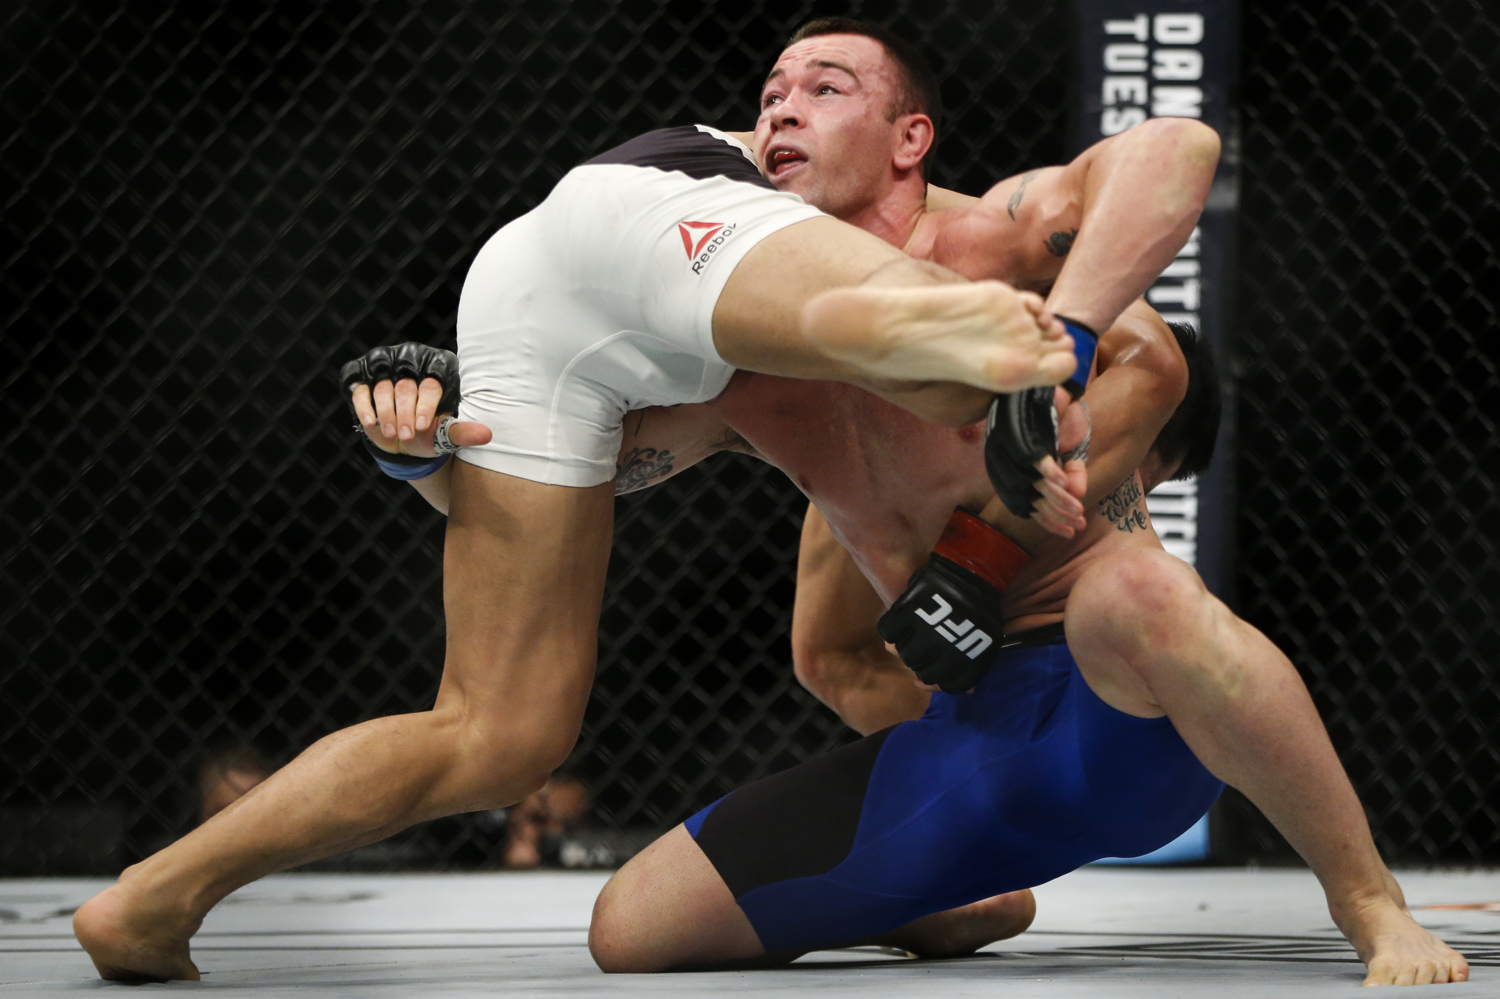 Colby Covington (R) of the United States fights with Dong Hyun Kim of South Korea during their welterweight bout at the UFC Fight Night at the Singapore Indoor Stadium on June 17, 2017.